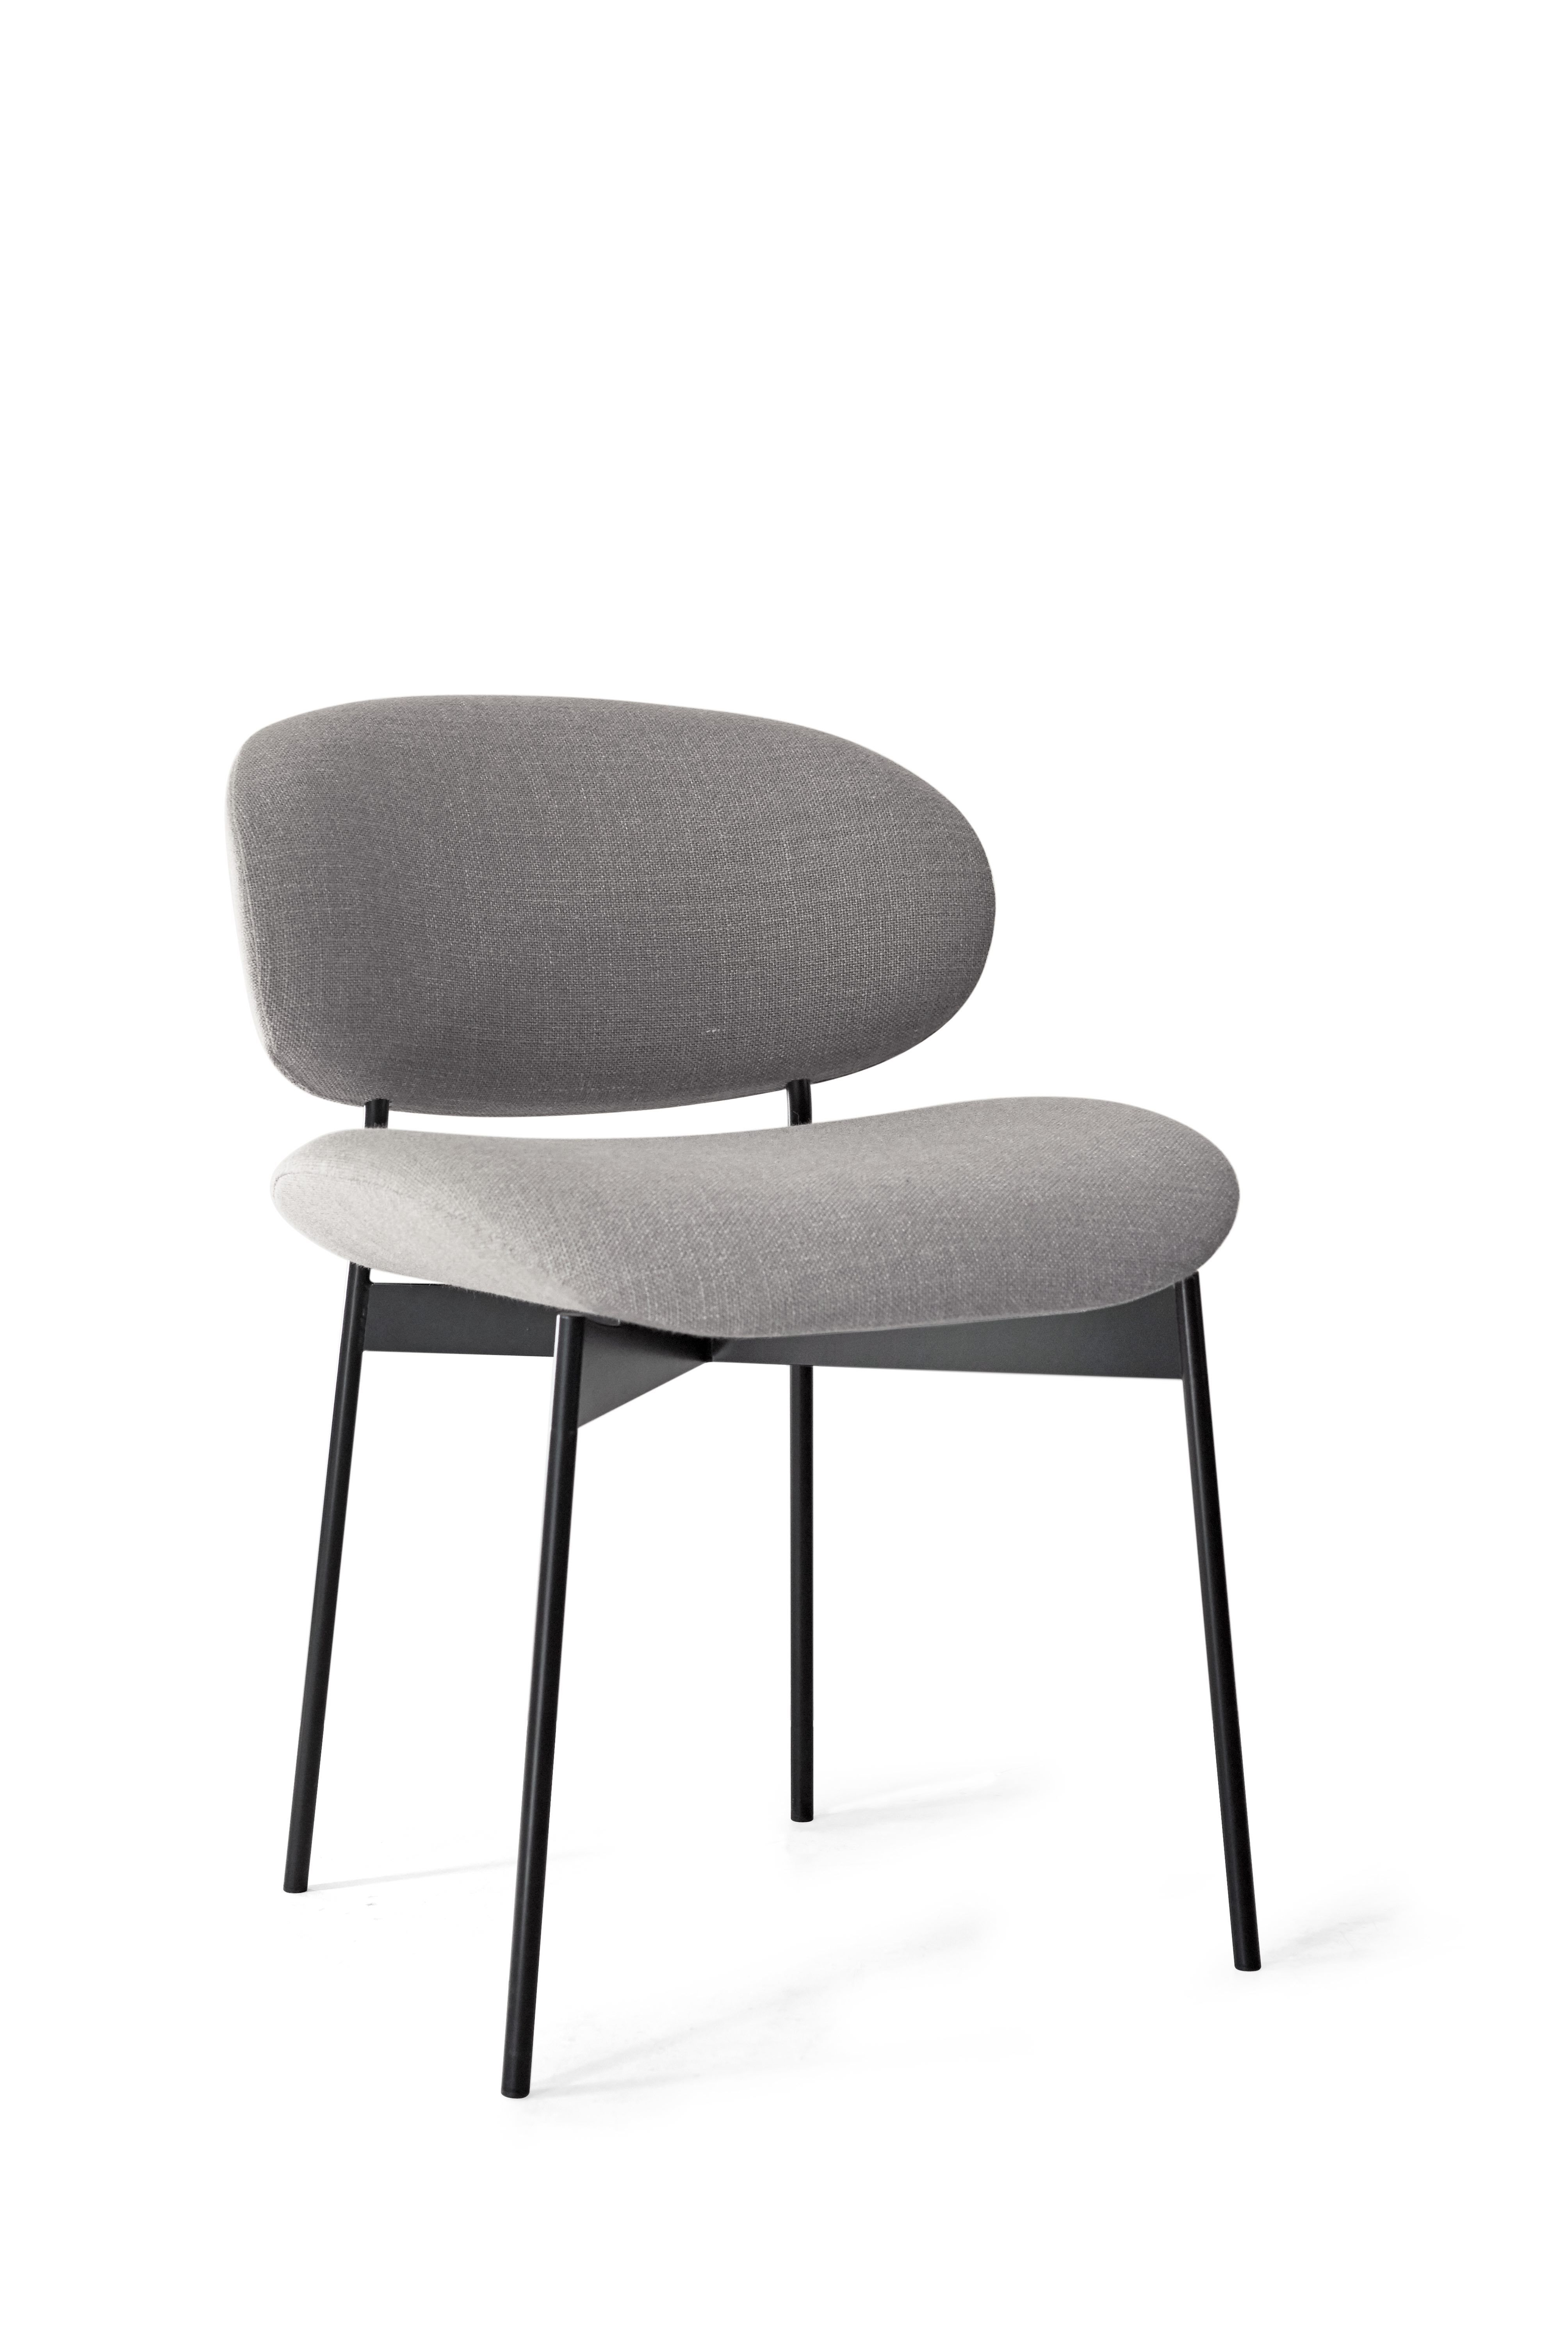 LUZ Chair Without Armrests. Covered With Ramie, Black Lacquered Steel Legs.  Choice Of